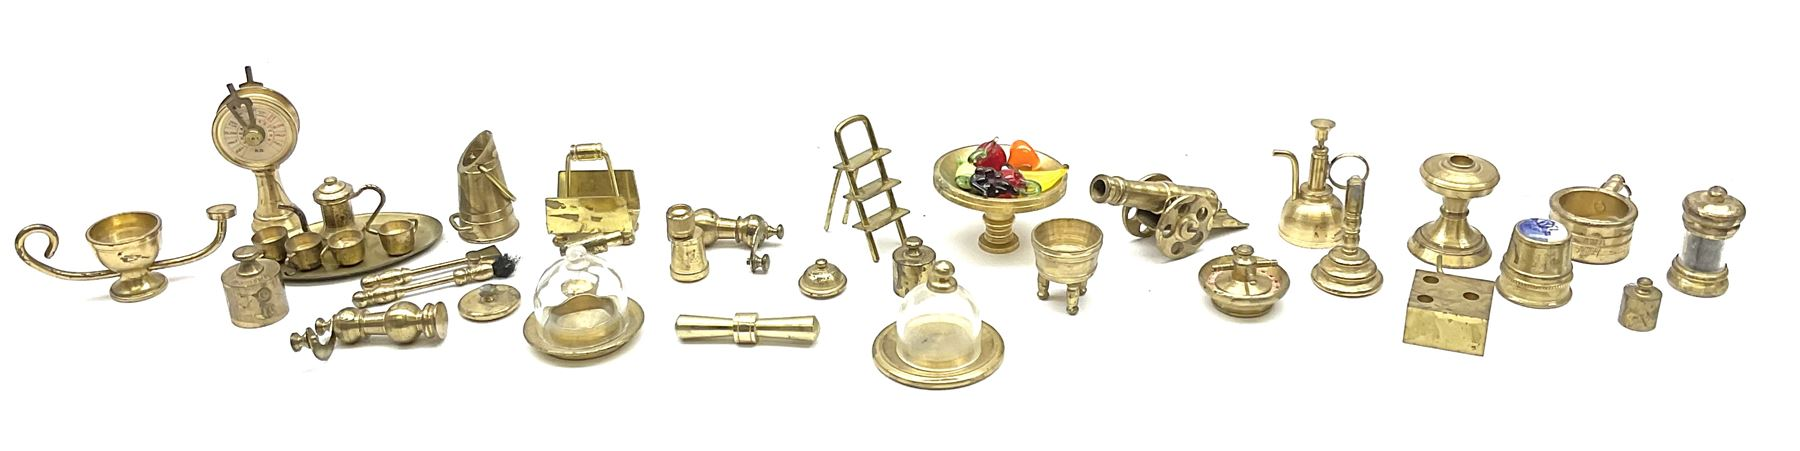 Over one-hundred various scale miniature brass ornaments suitable for decorating doll's houses inclu - Image 4 of 10